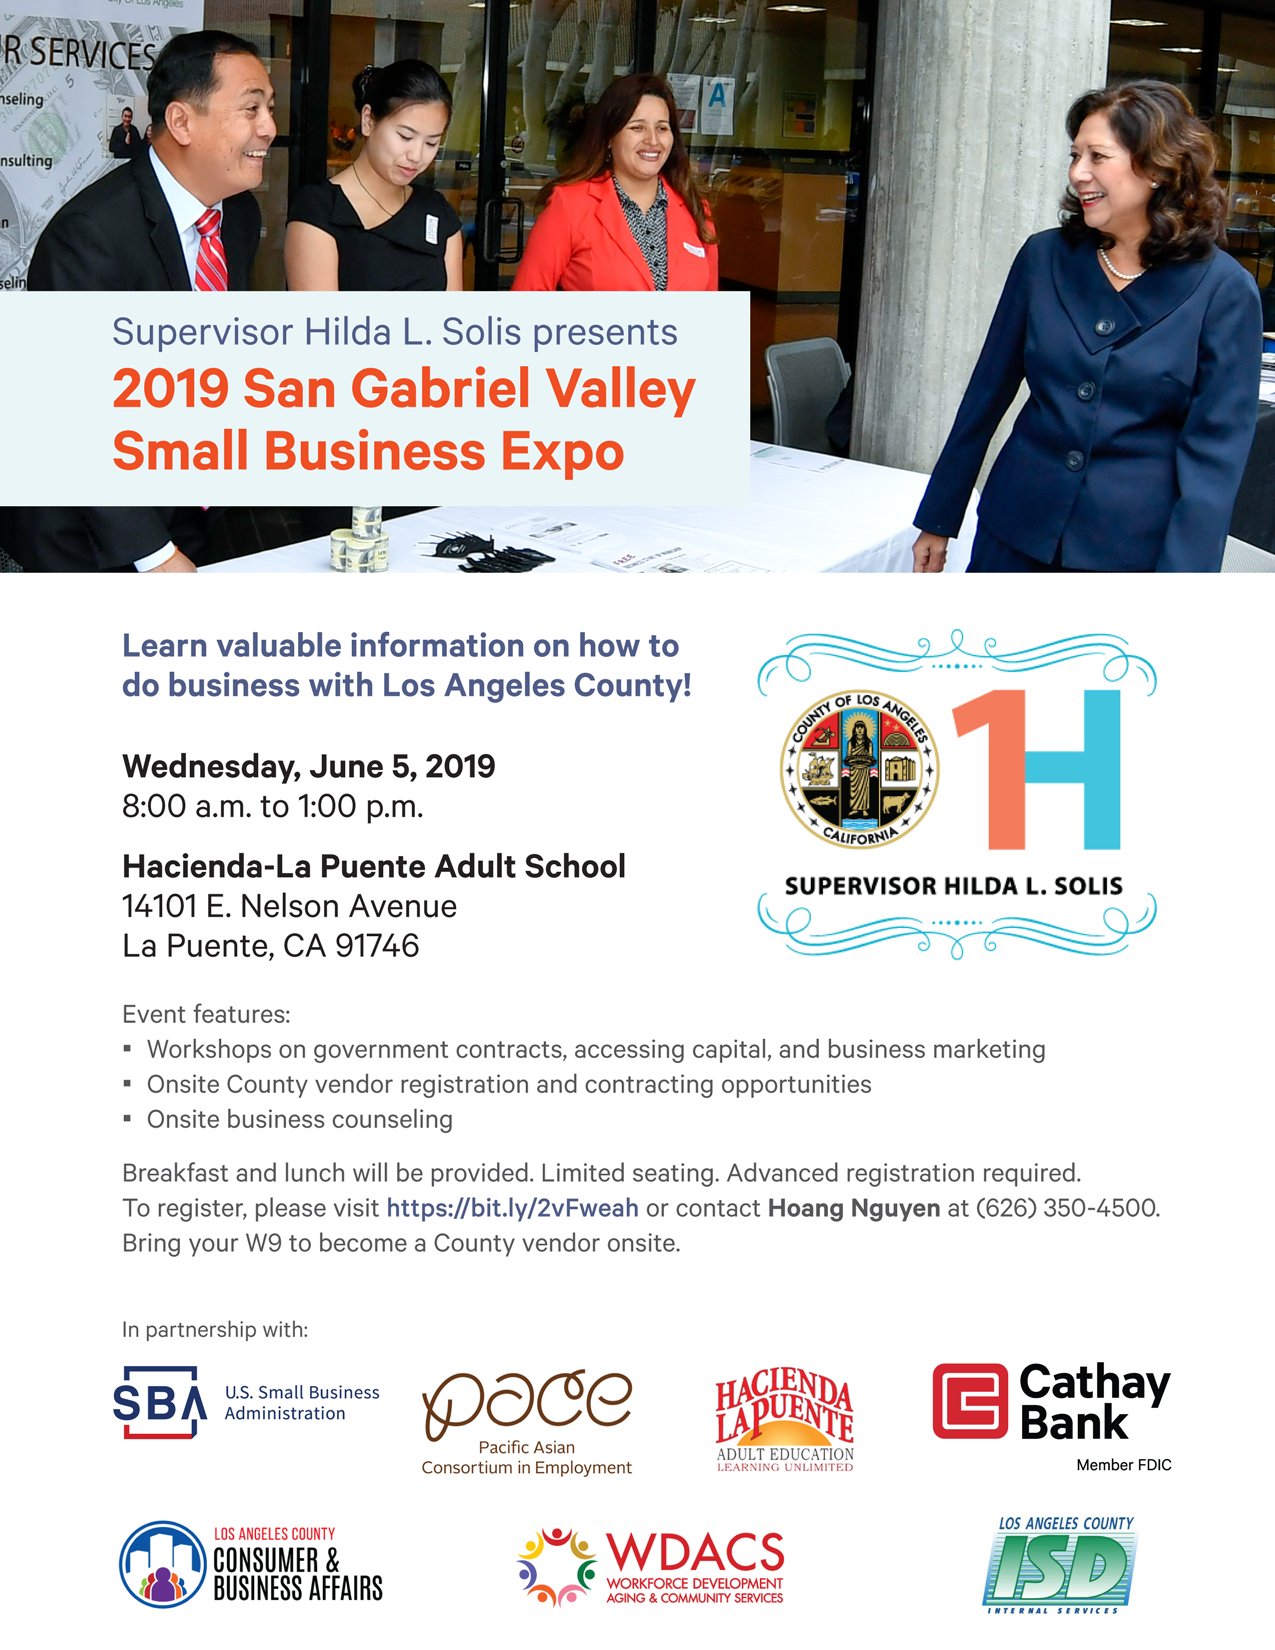 Supervisor-Solis-Presents-2019-SGV-Small-Business-Expo3.png